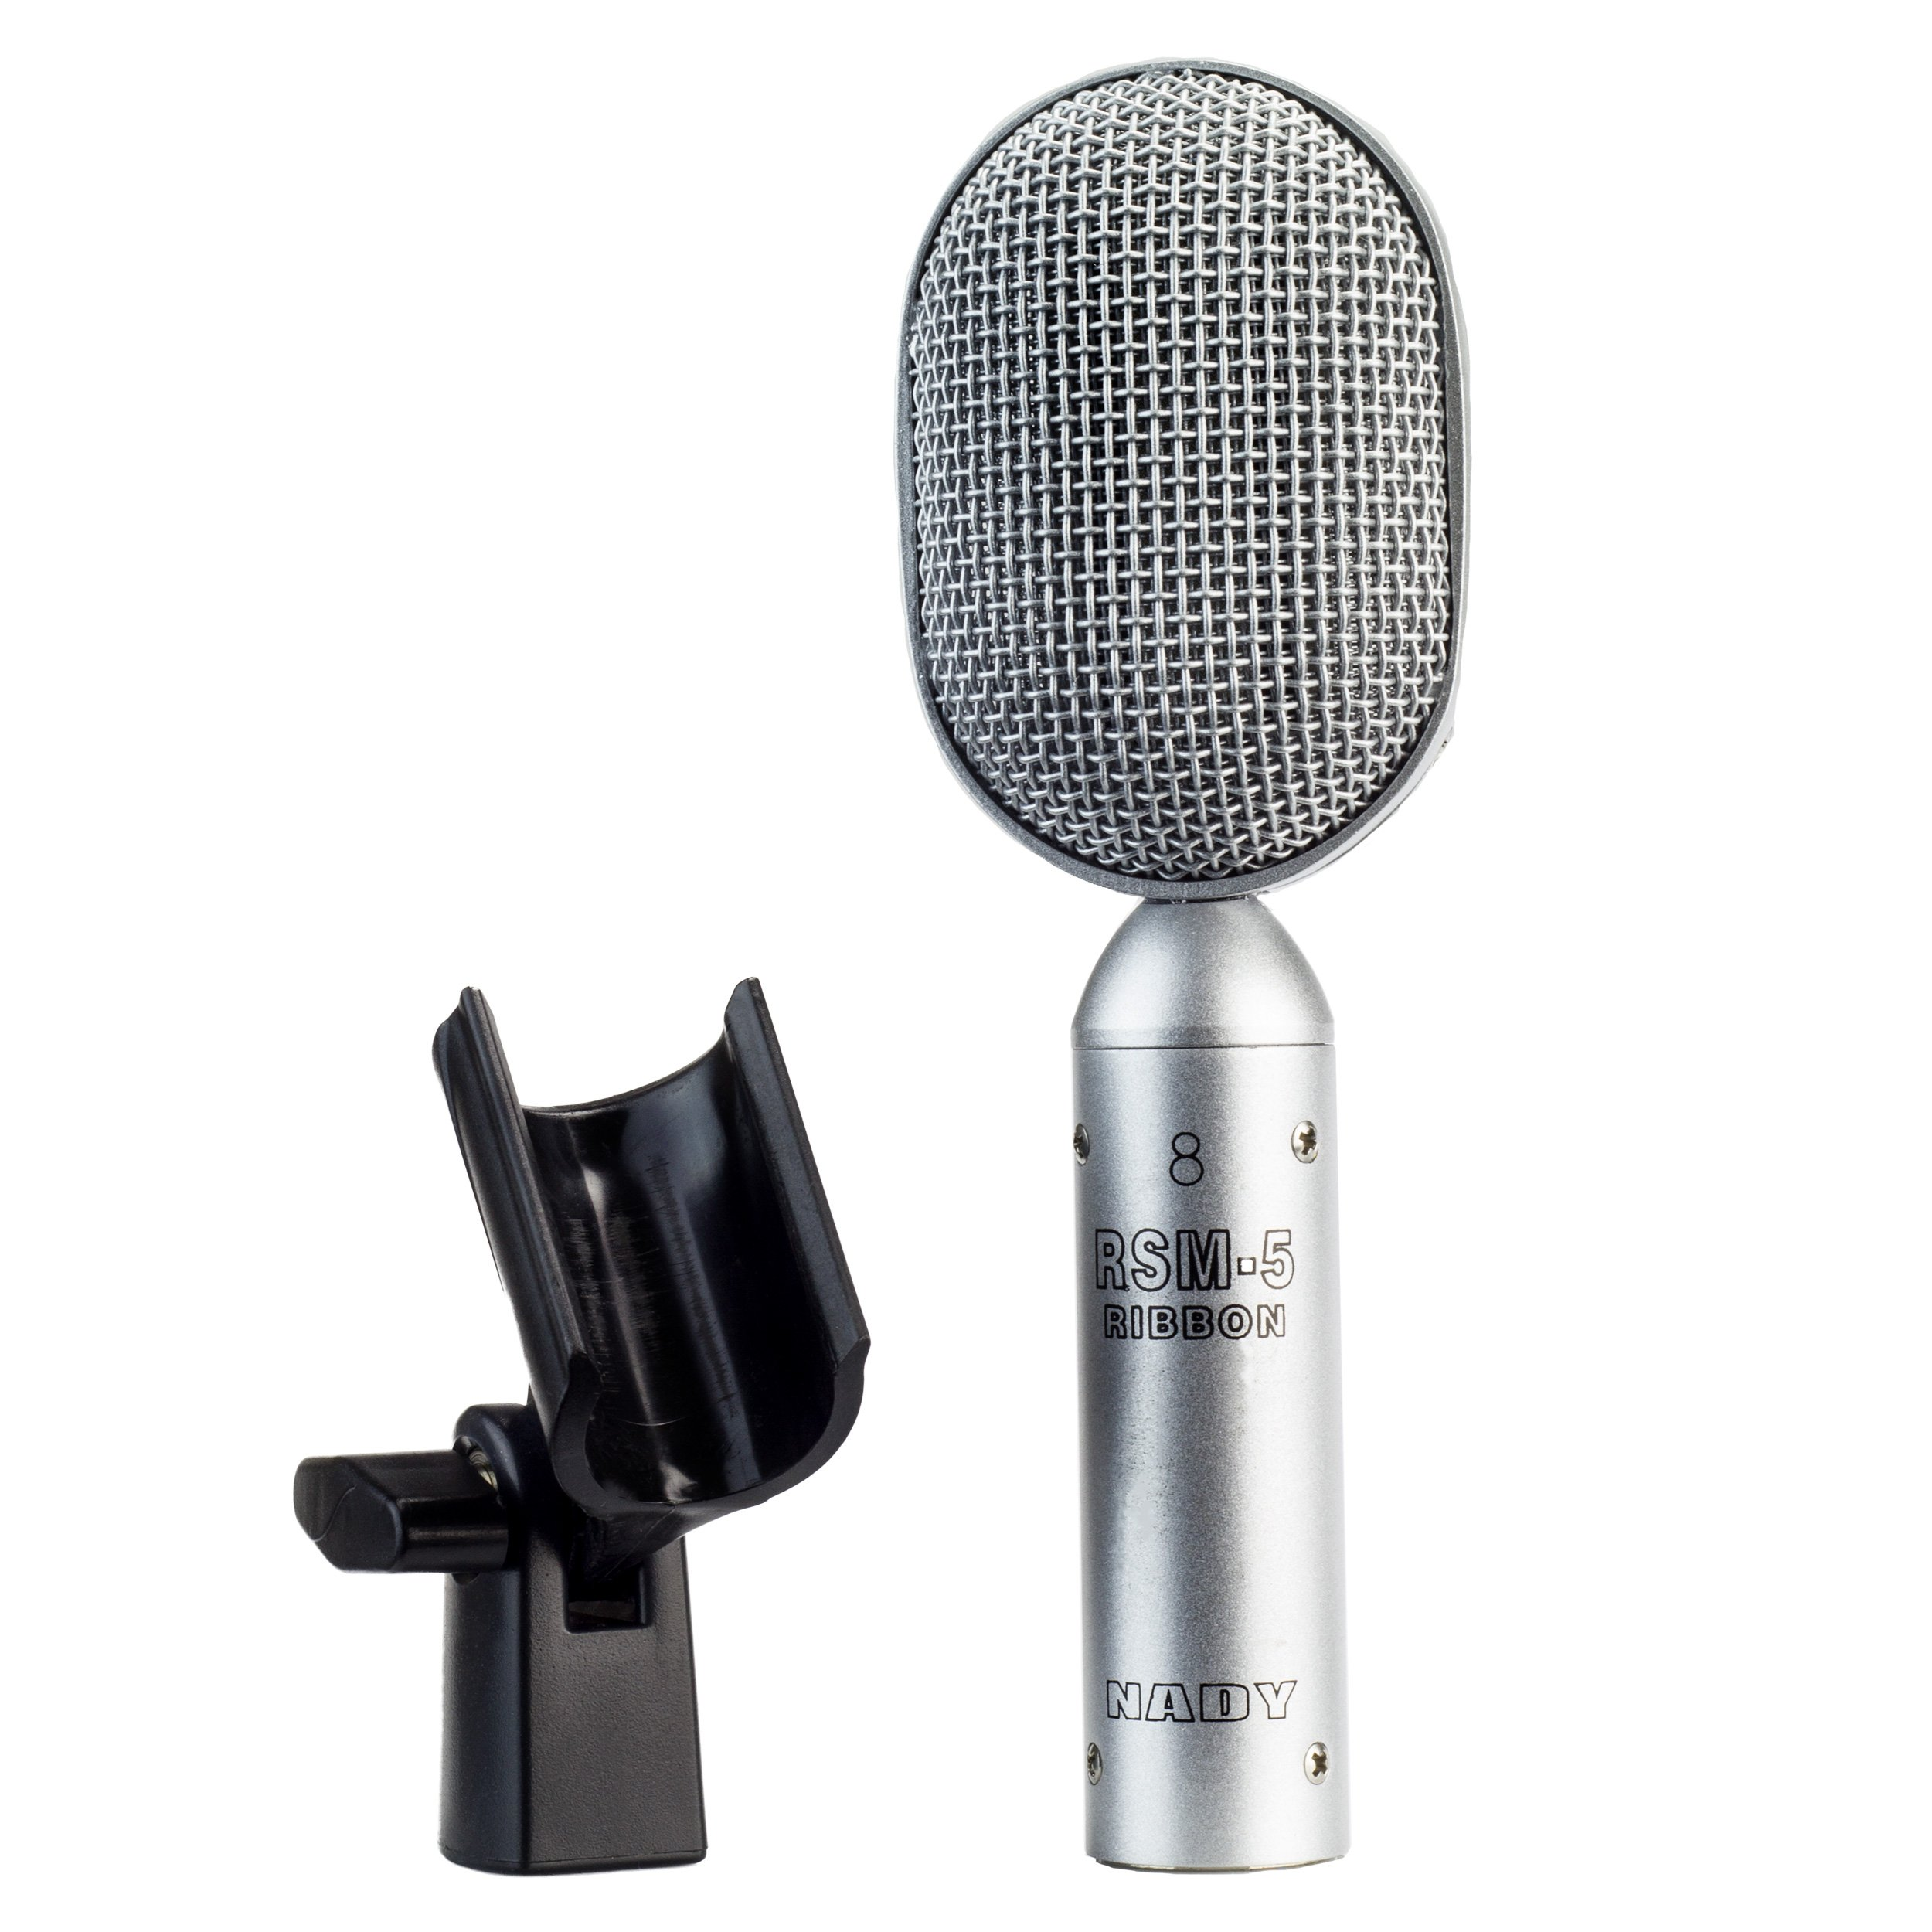 Compact Velocity Studio Ribbon Microphone by Nady